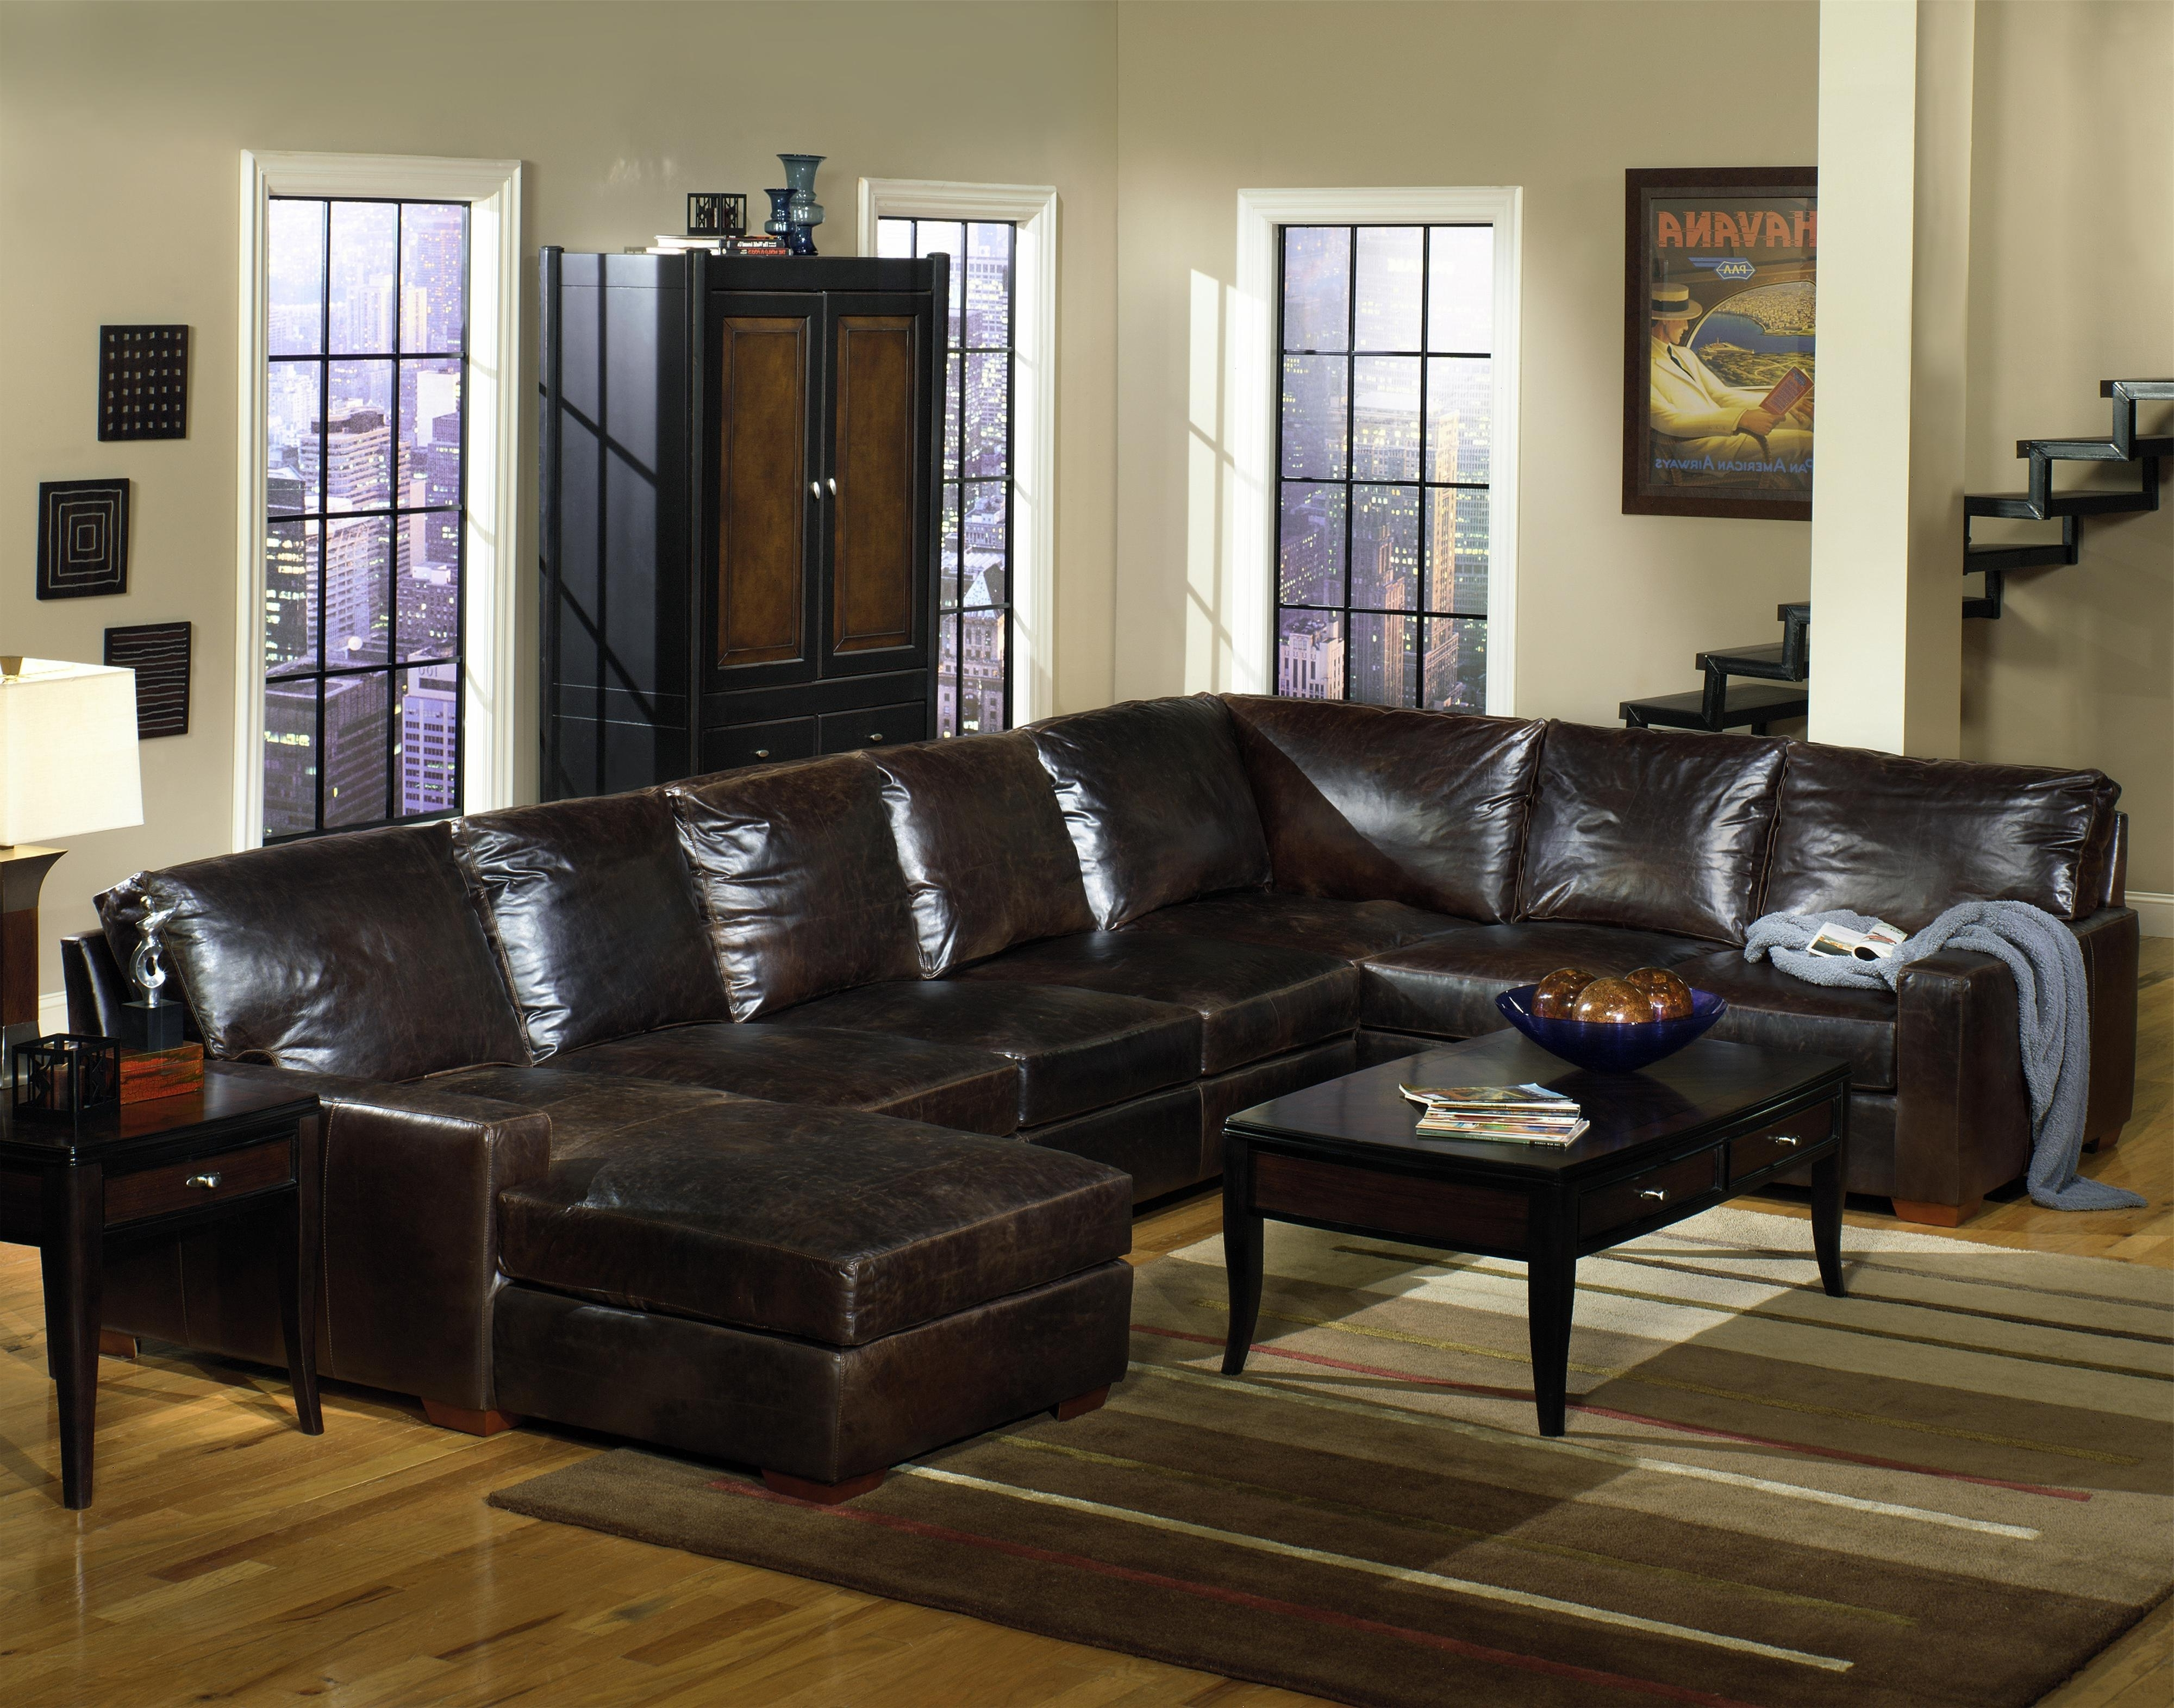 2017 Leather Sectional Sofa With Chaise Lounge Leather Sectional Sofas Regarding Leather Sectionals With Chaise Lounge (View 1 of 15)